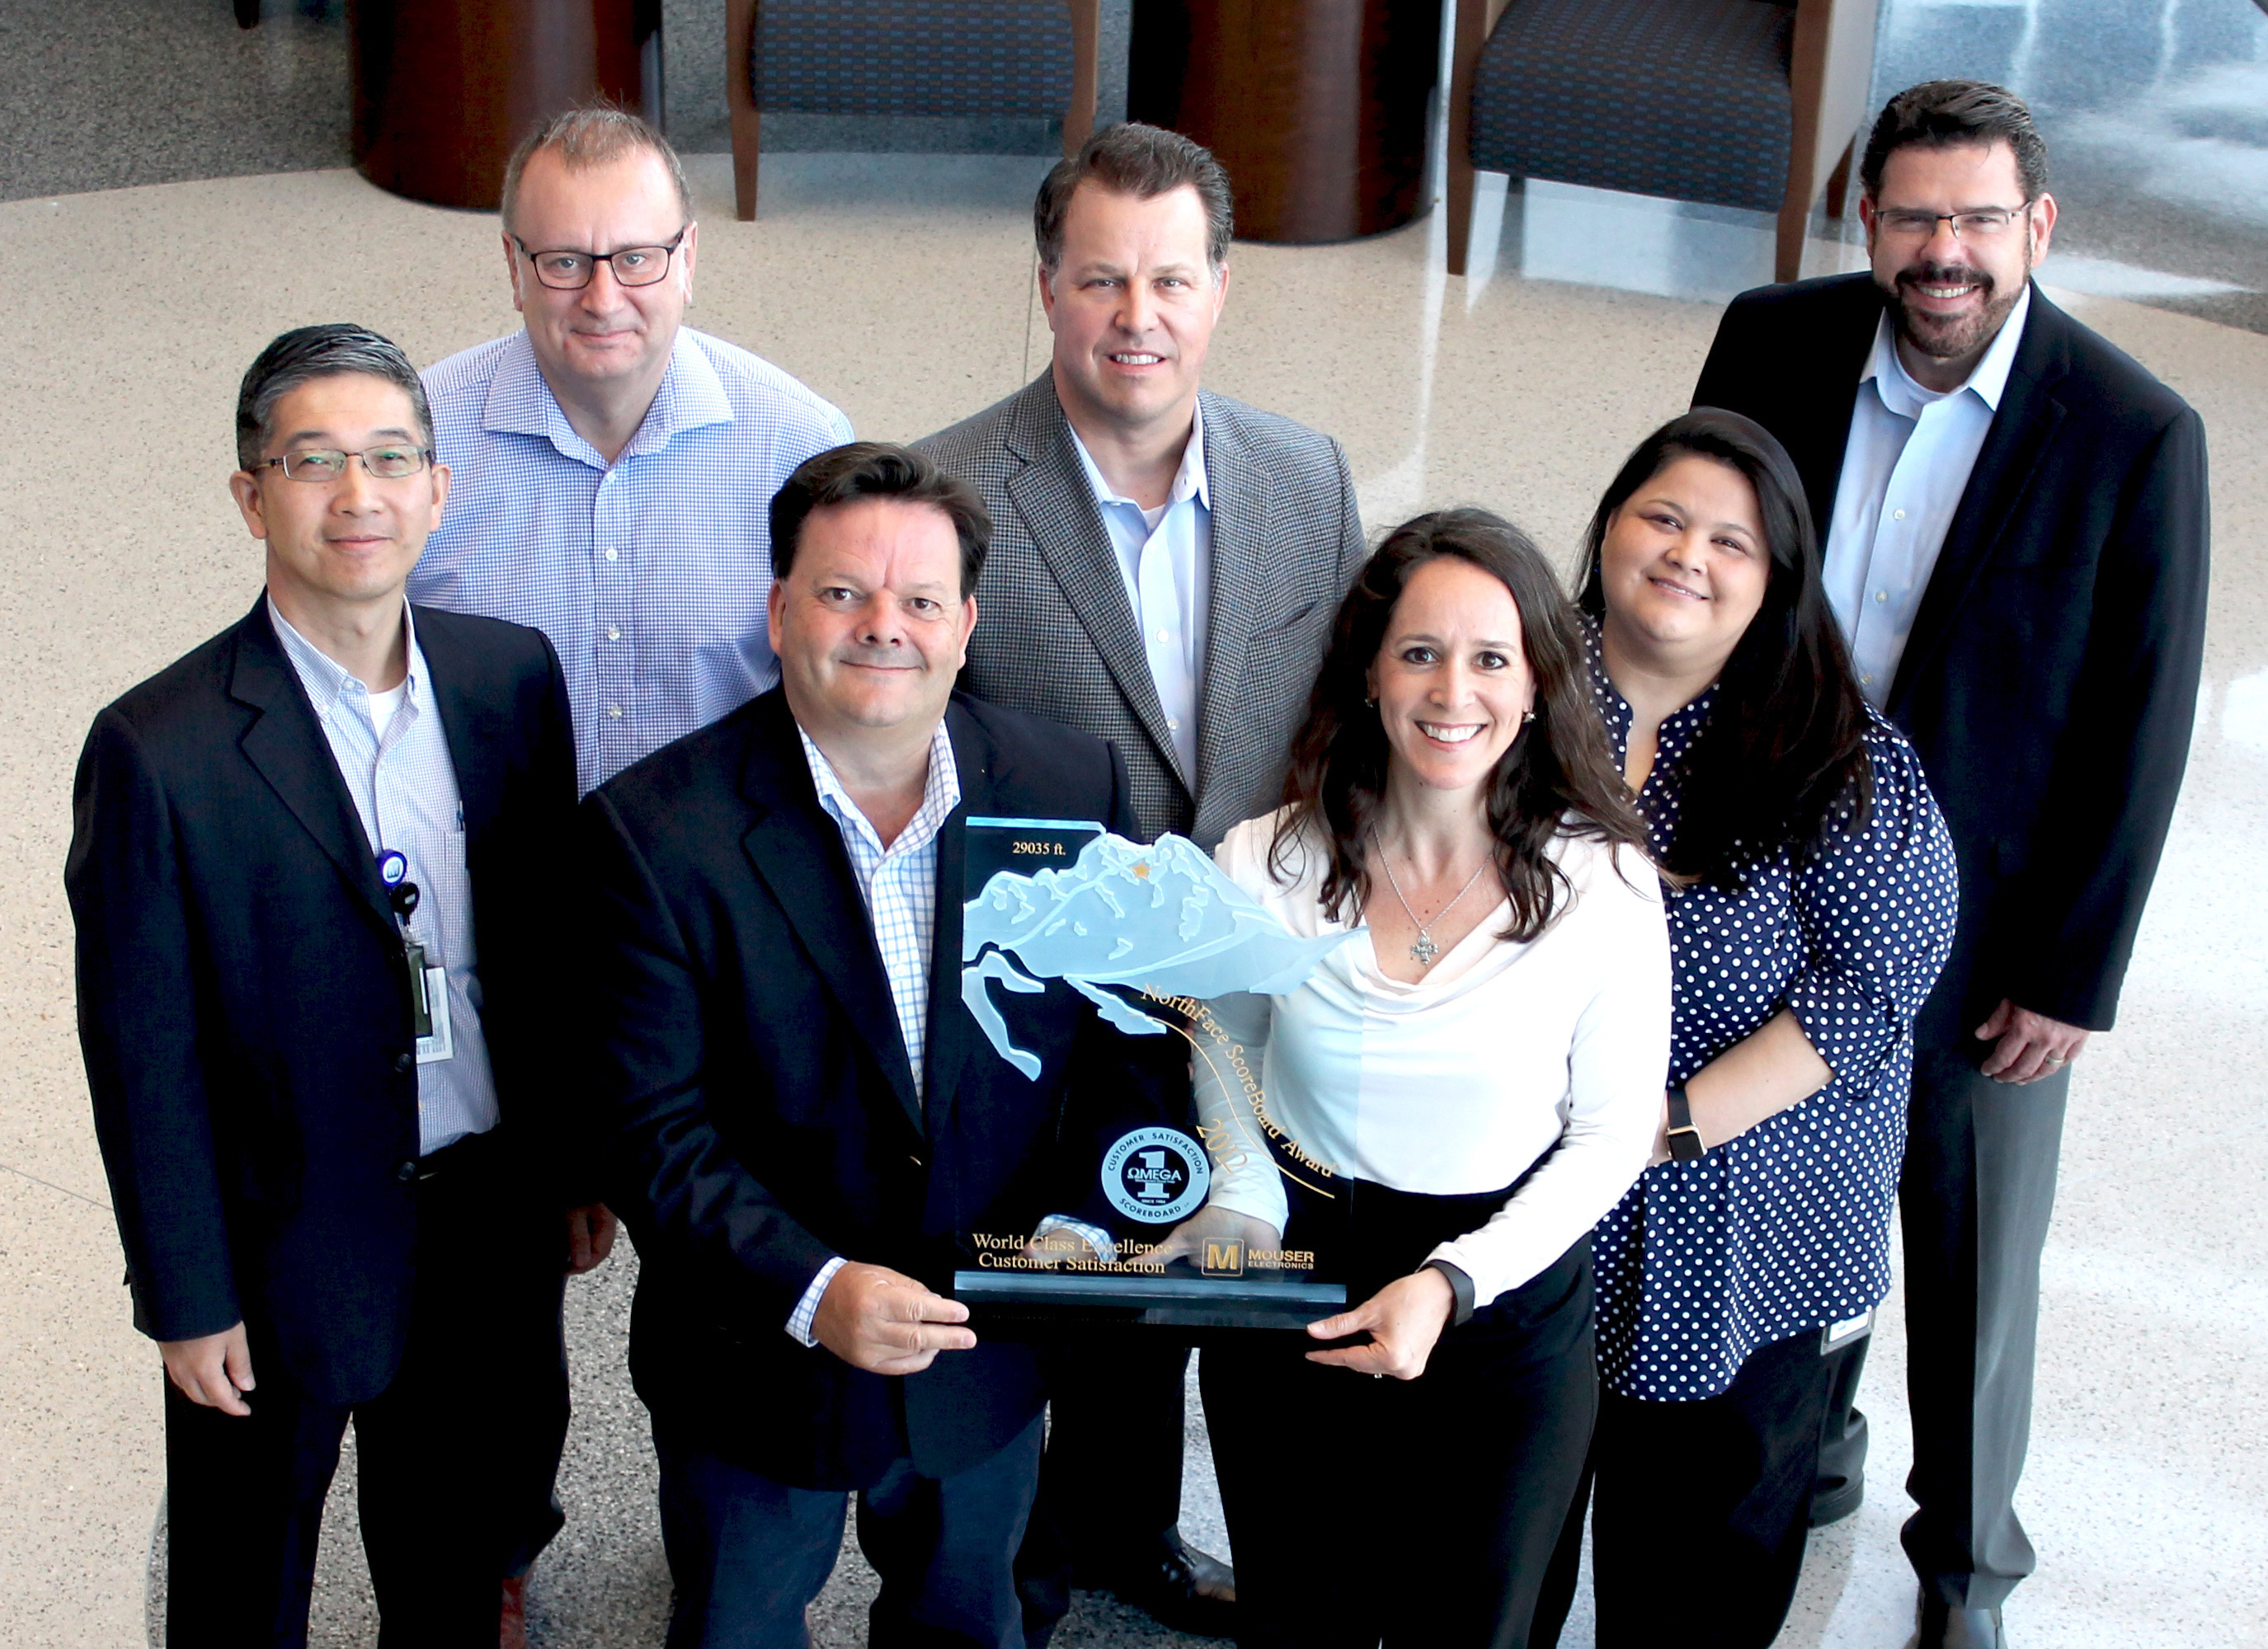 For the fifth consecutive year, Mouser Electronics has received the NorthFace ScoreBoard Award from Omega Management Group Corp. for world-class customer service excellence. Pictured left to right in back are Mouser executives Minky Lam, Graham Munson, Coby Kleinjan, Linda Salinas, Mauro Salomao. In front holding trophy are Mark Burr-Lonnon and Stephanie Sorrell. (Photo: Business Wire)